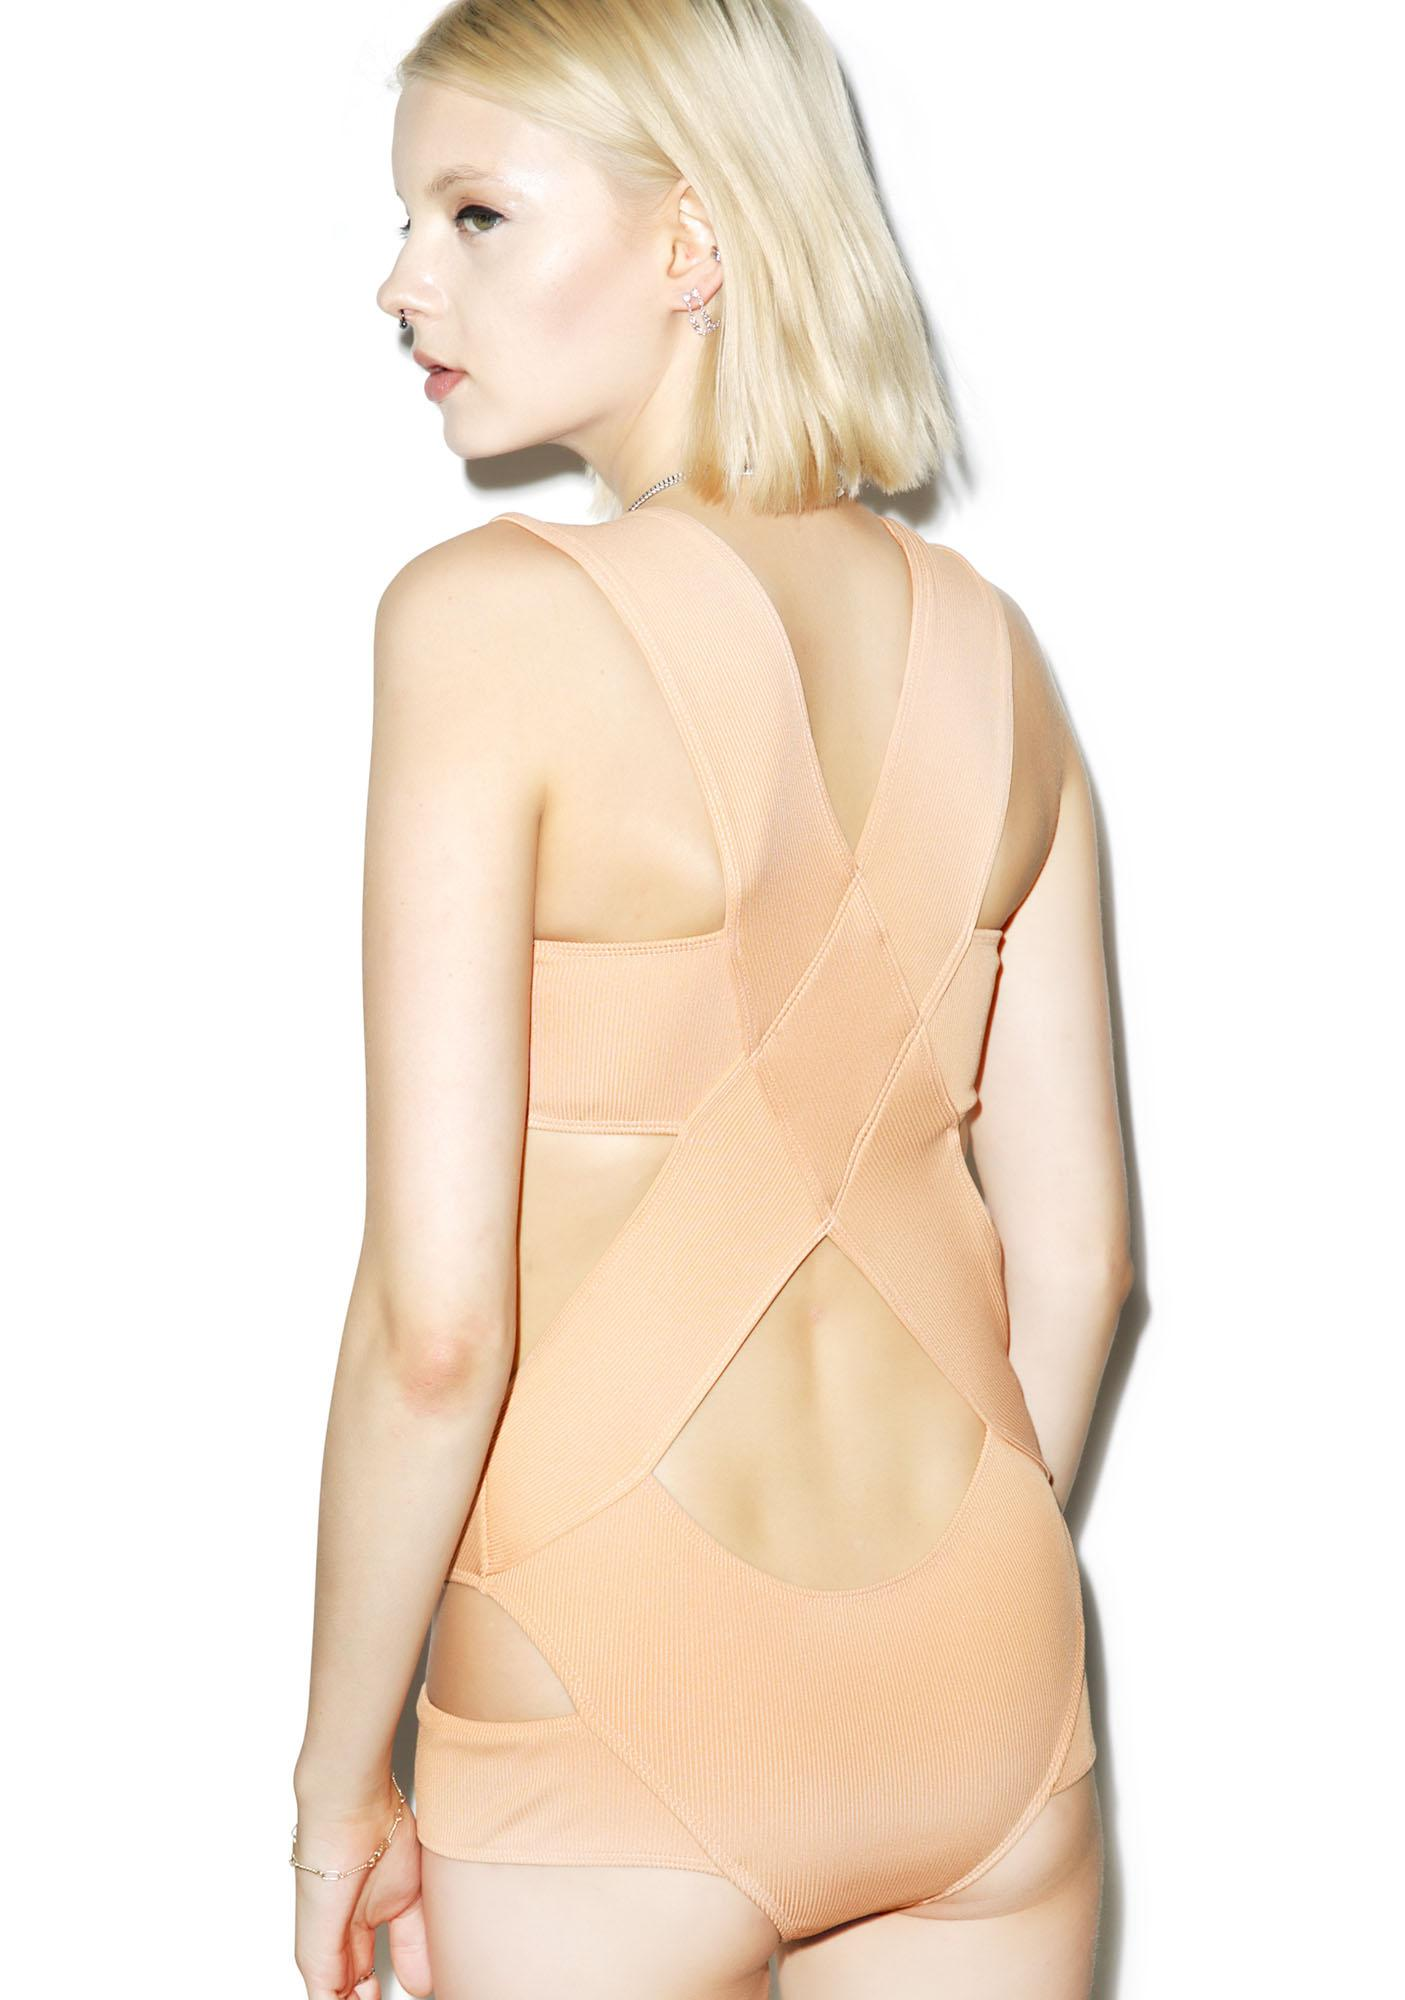 Minimale Animale The Stephanie One Piece